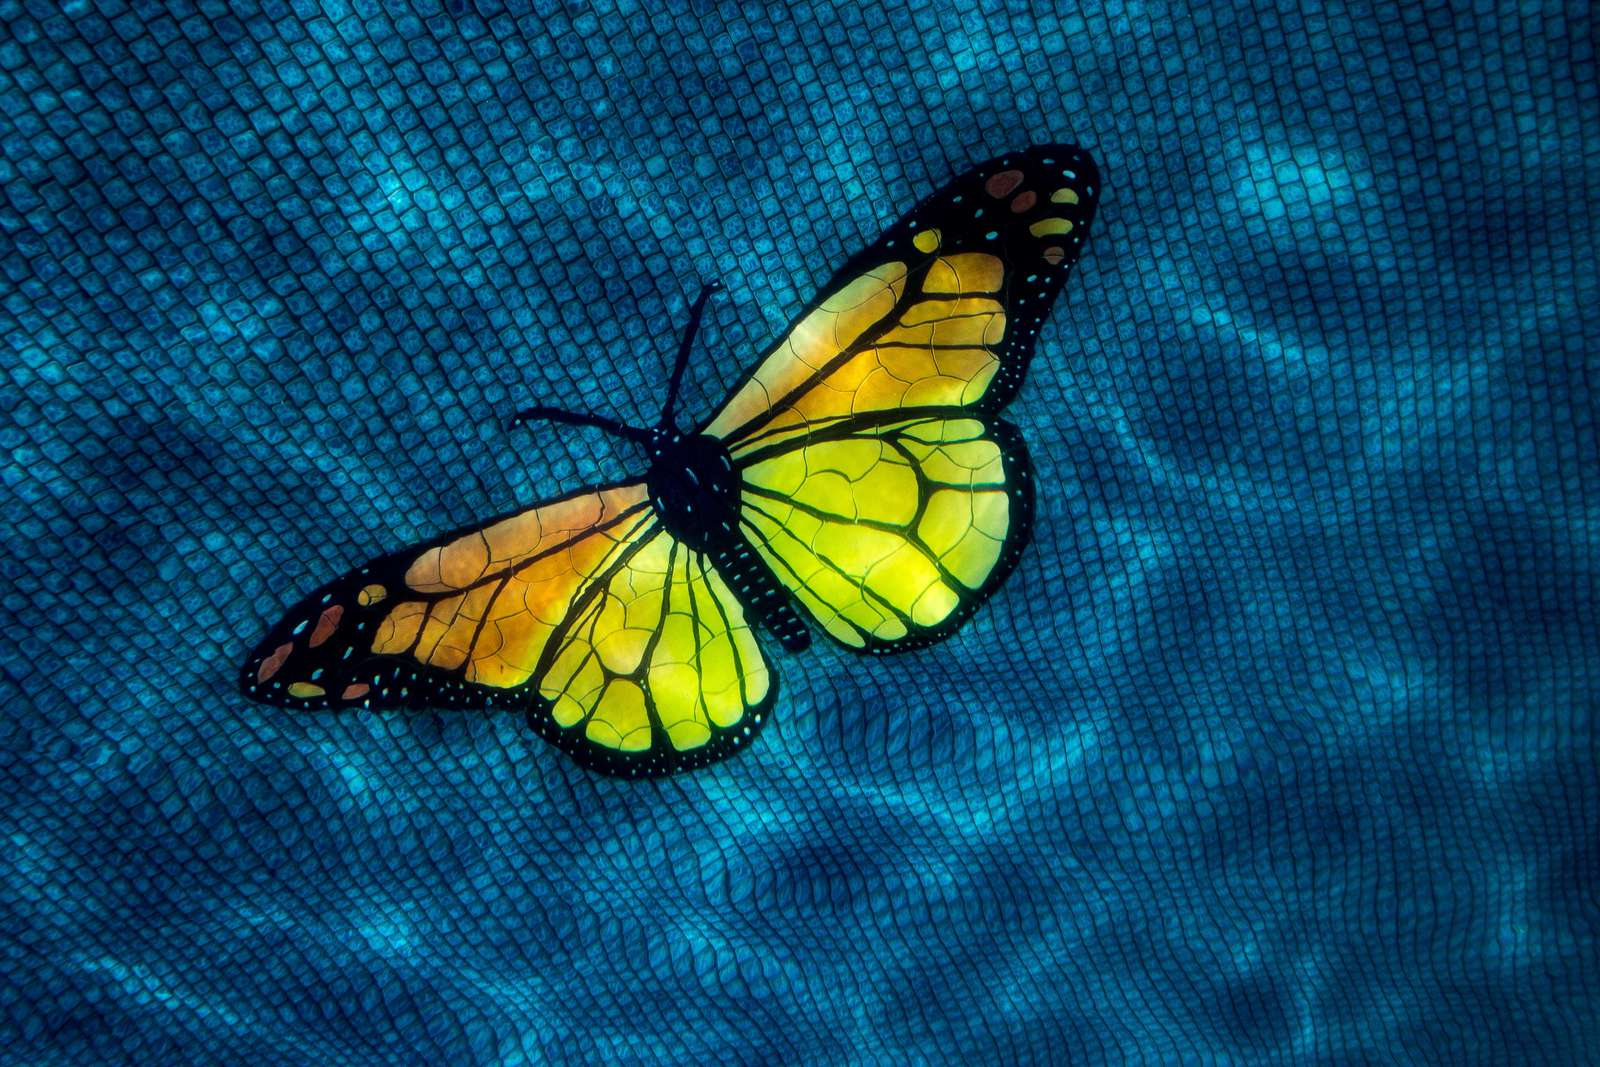 Cute colorful butterfly art ardorns the various communal areas